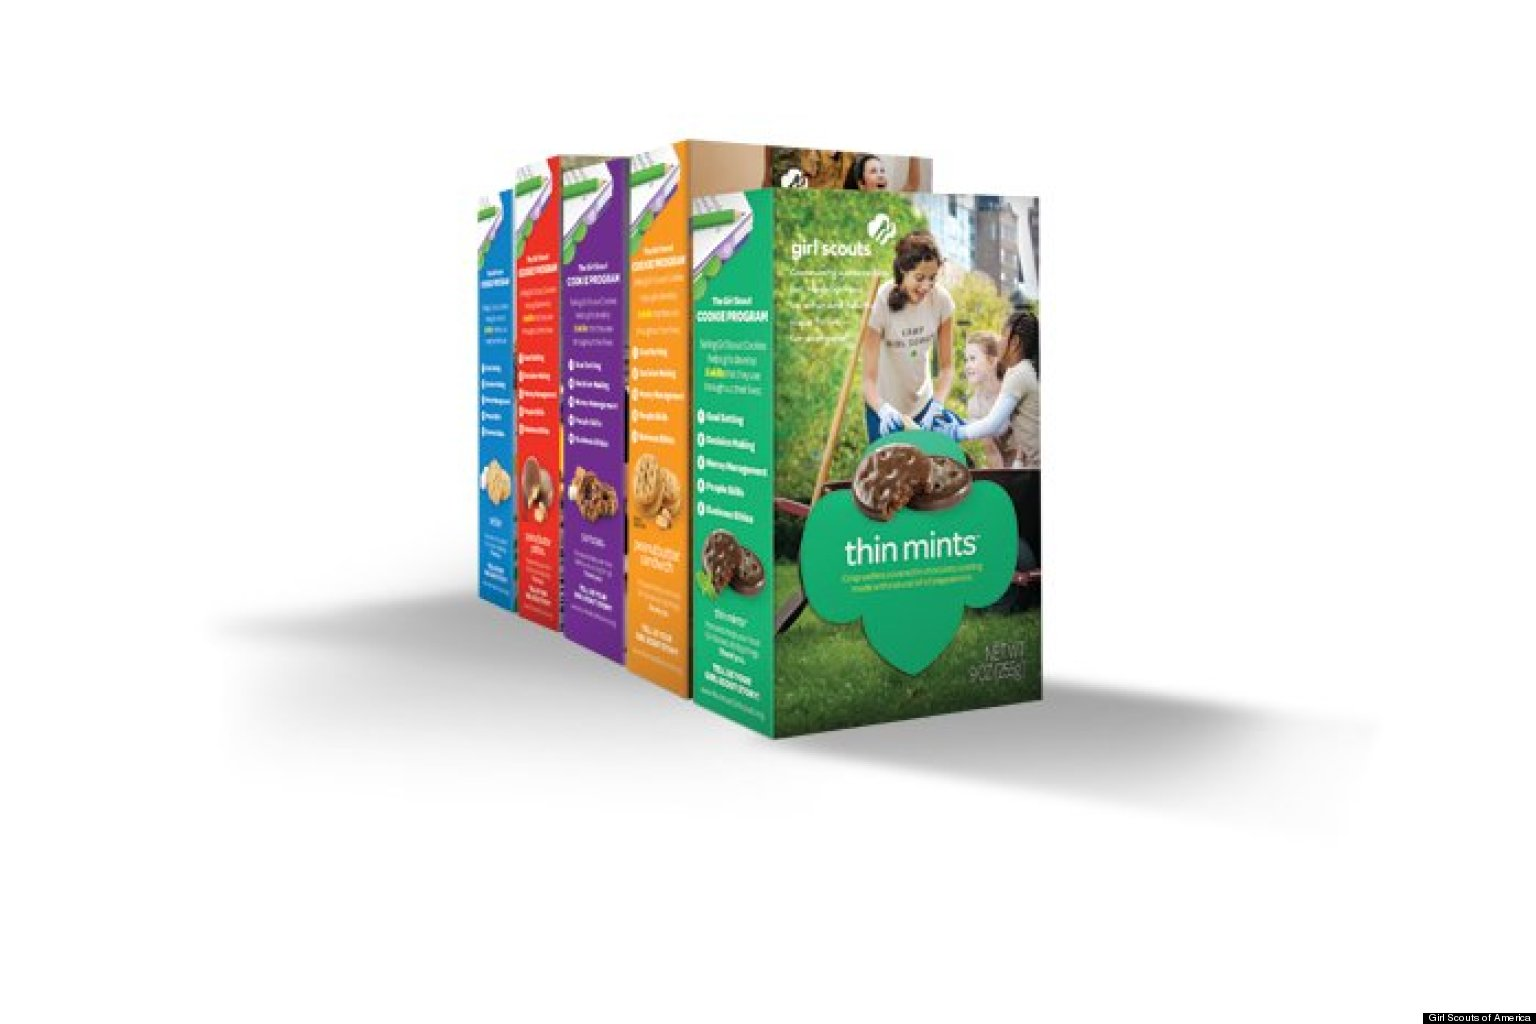 new girl scout cookie boxes to debut this fall photo